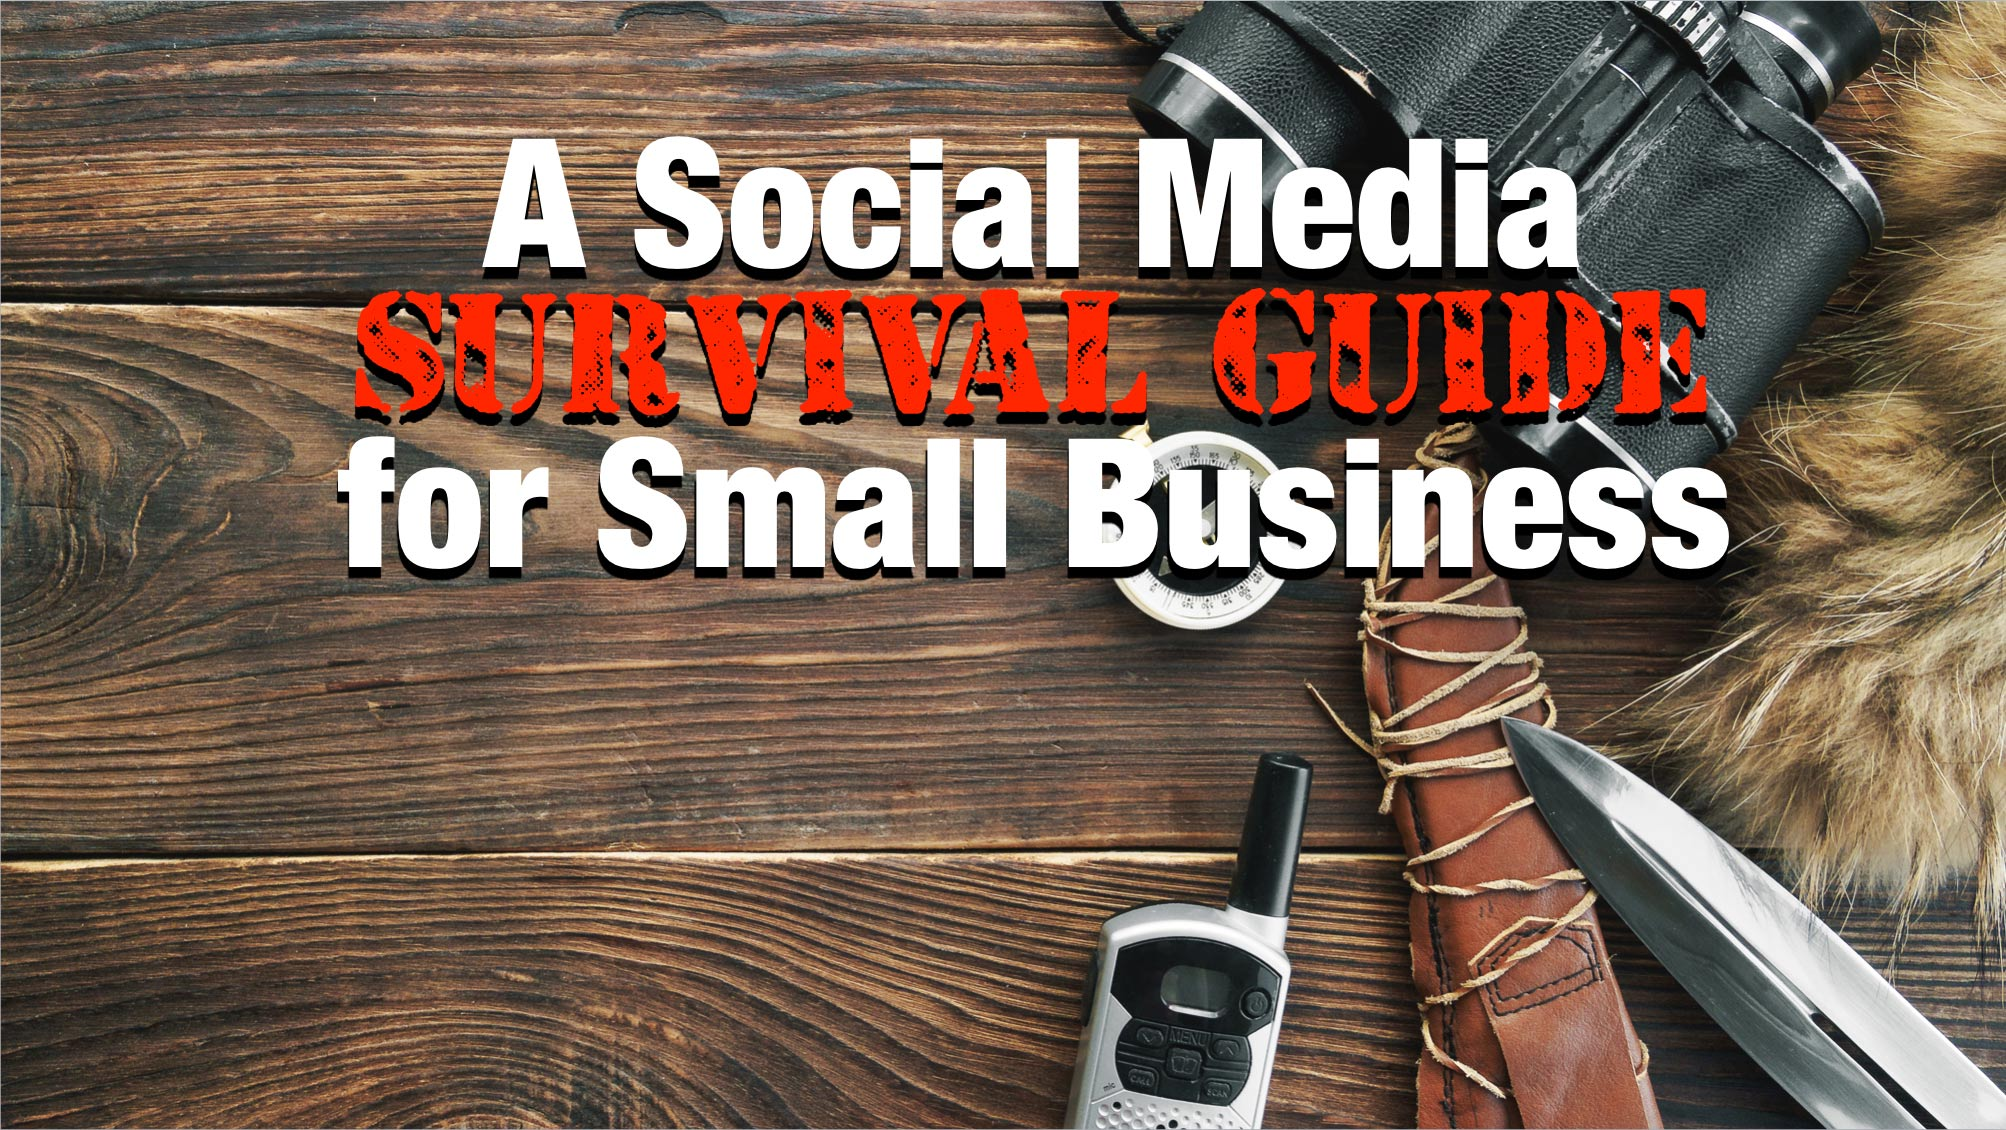 A Social Media Survival Guide for Small Business